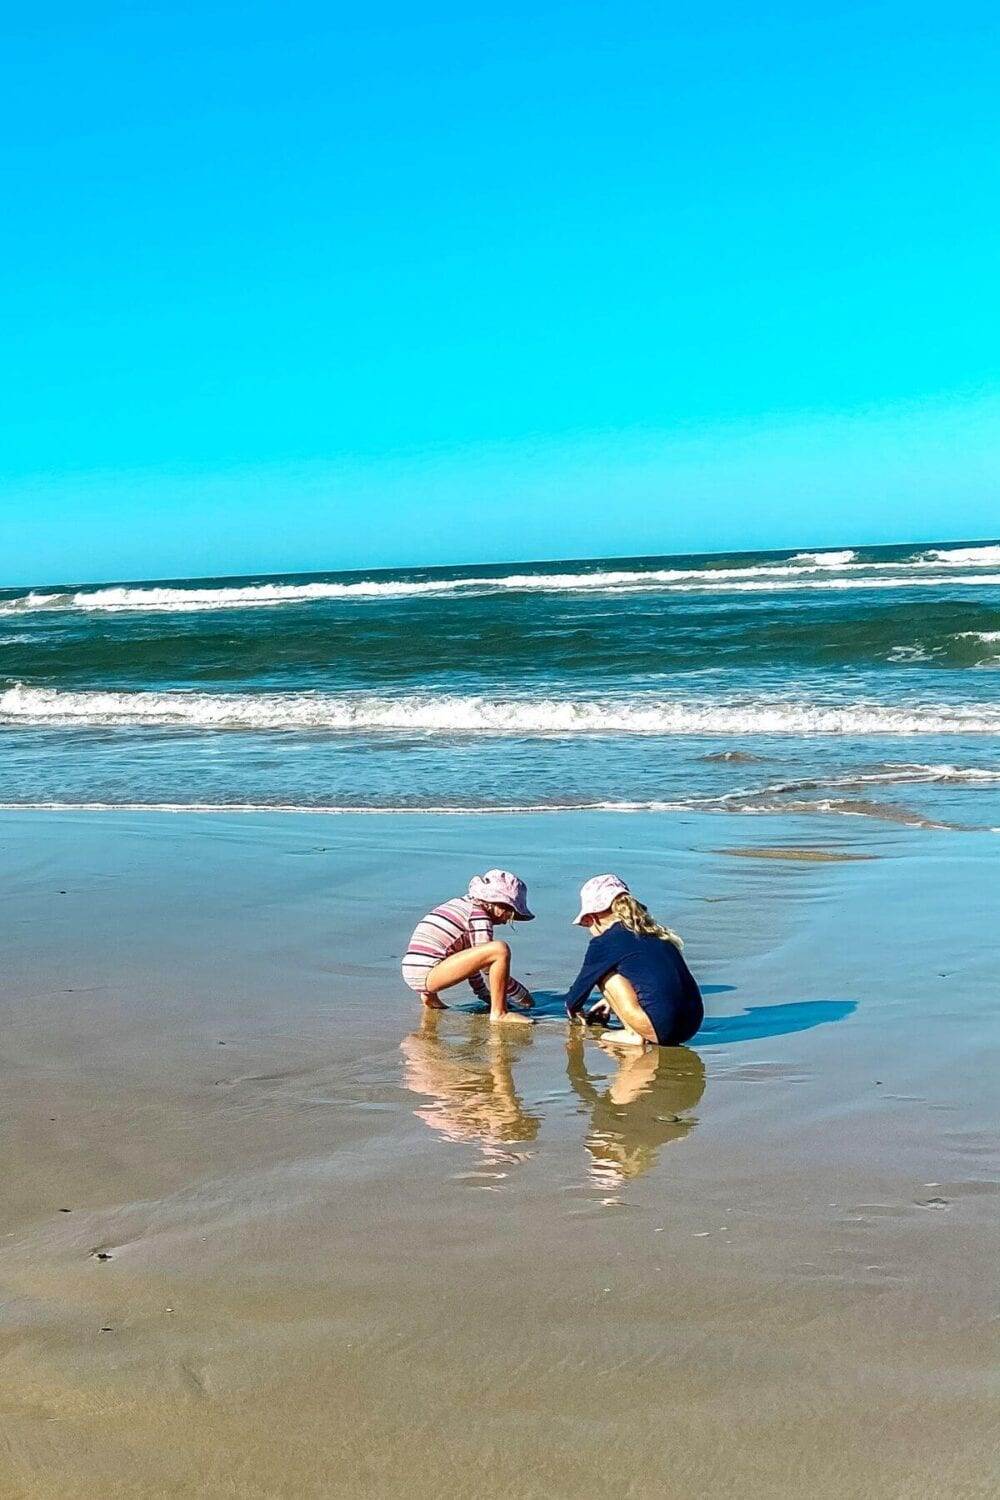 kids playing at the beach in sun protective clothing